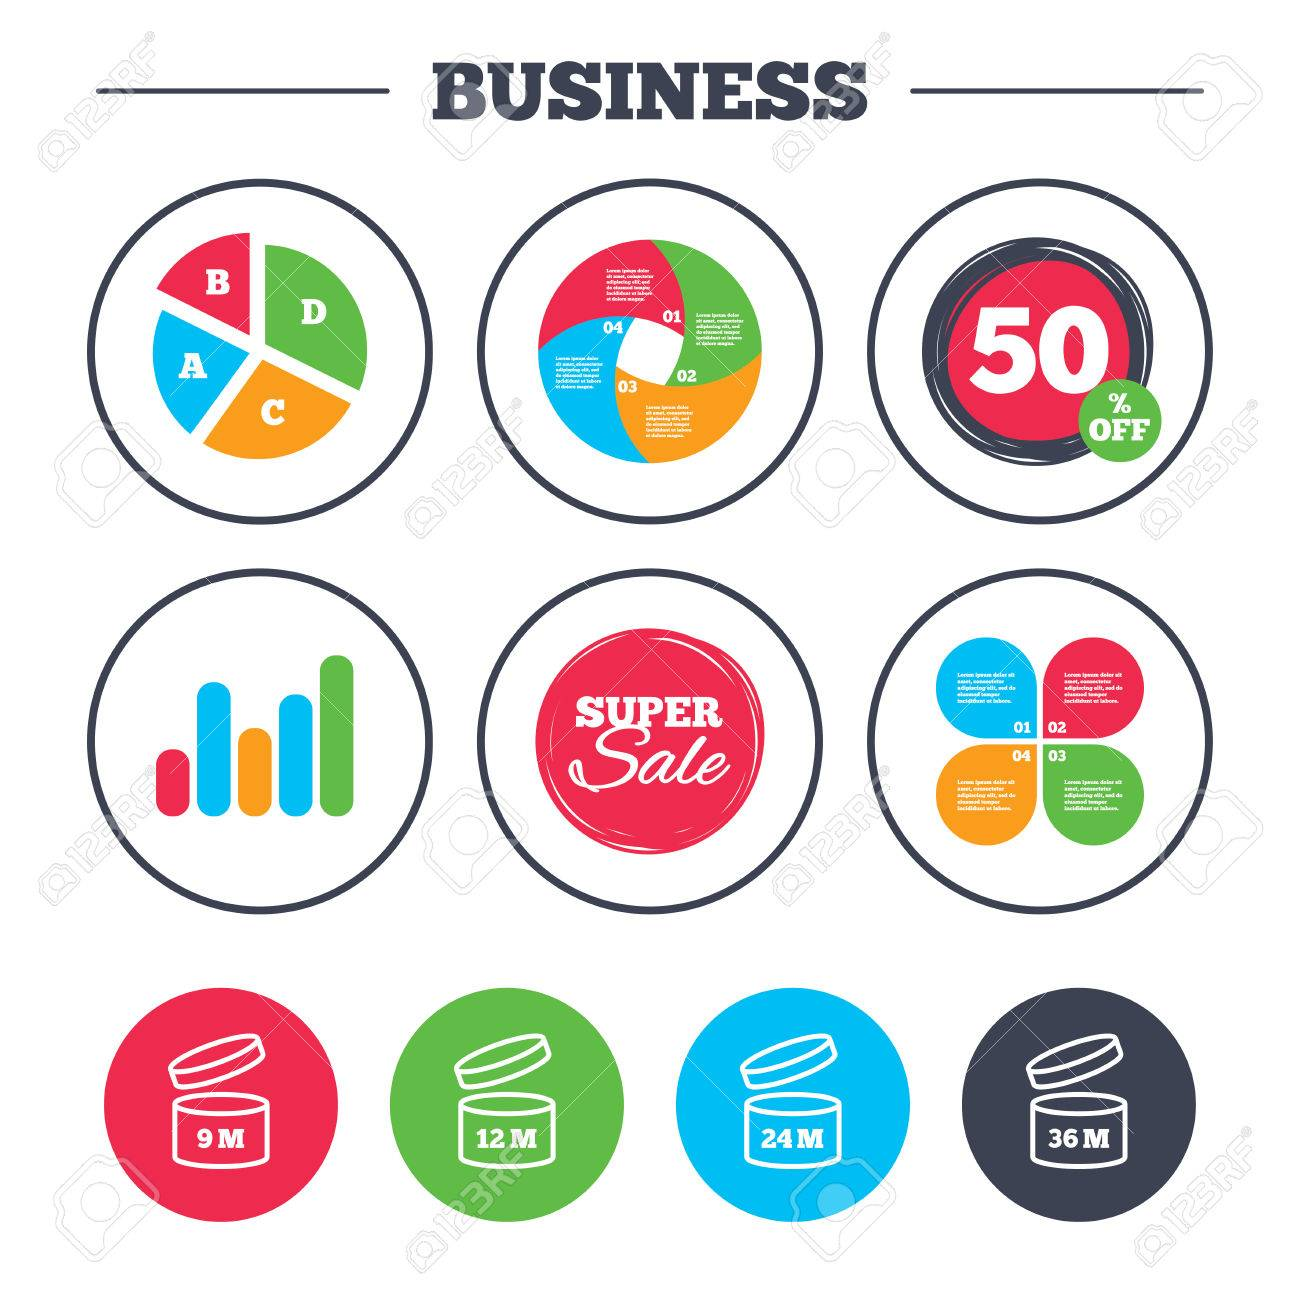 Business pie chart growth graph after opening use icons business pie chart growth graph after opening use icons expiration date 9 nvjuhfo Gallery